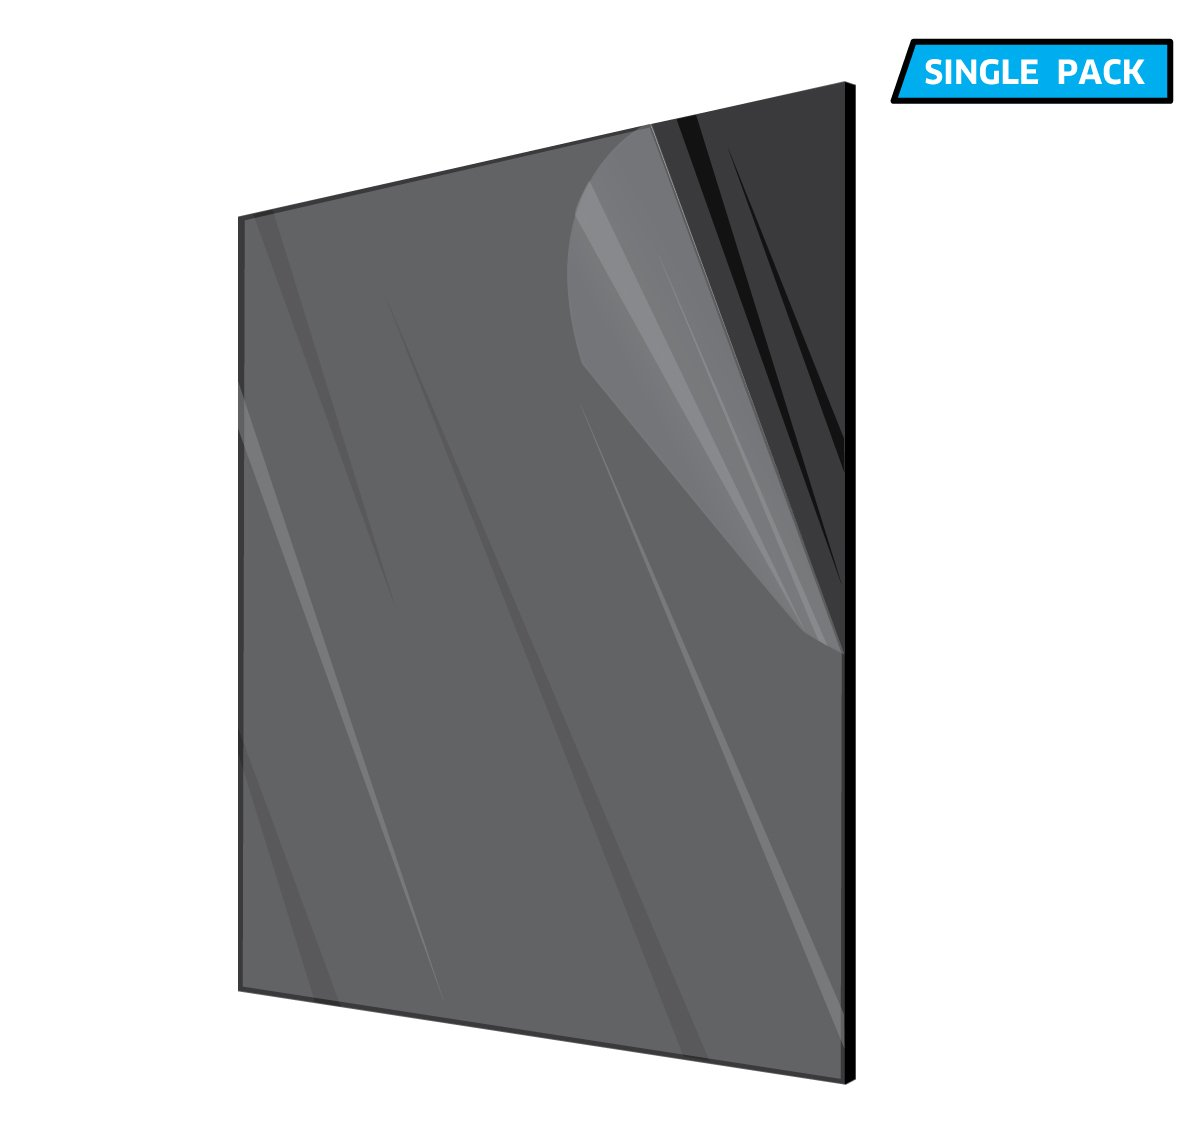 Durable Black Multipurpose /& Ideal For Countless Uses 12/'/'x12/'/' 1//8 thick Water Resistant /& Weatherproof AdirOffice Acrylic Plexiglass Sheet